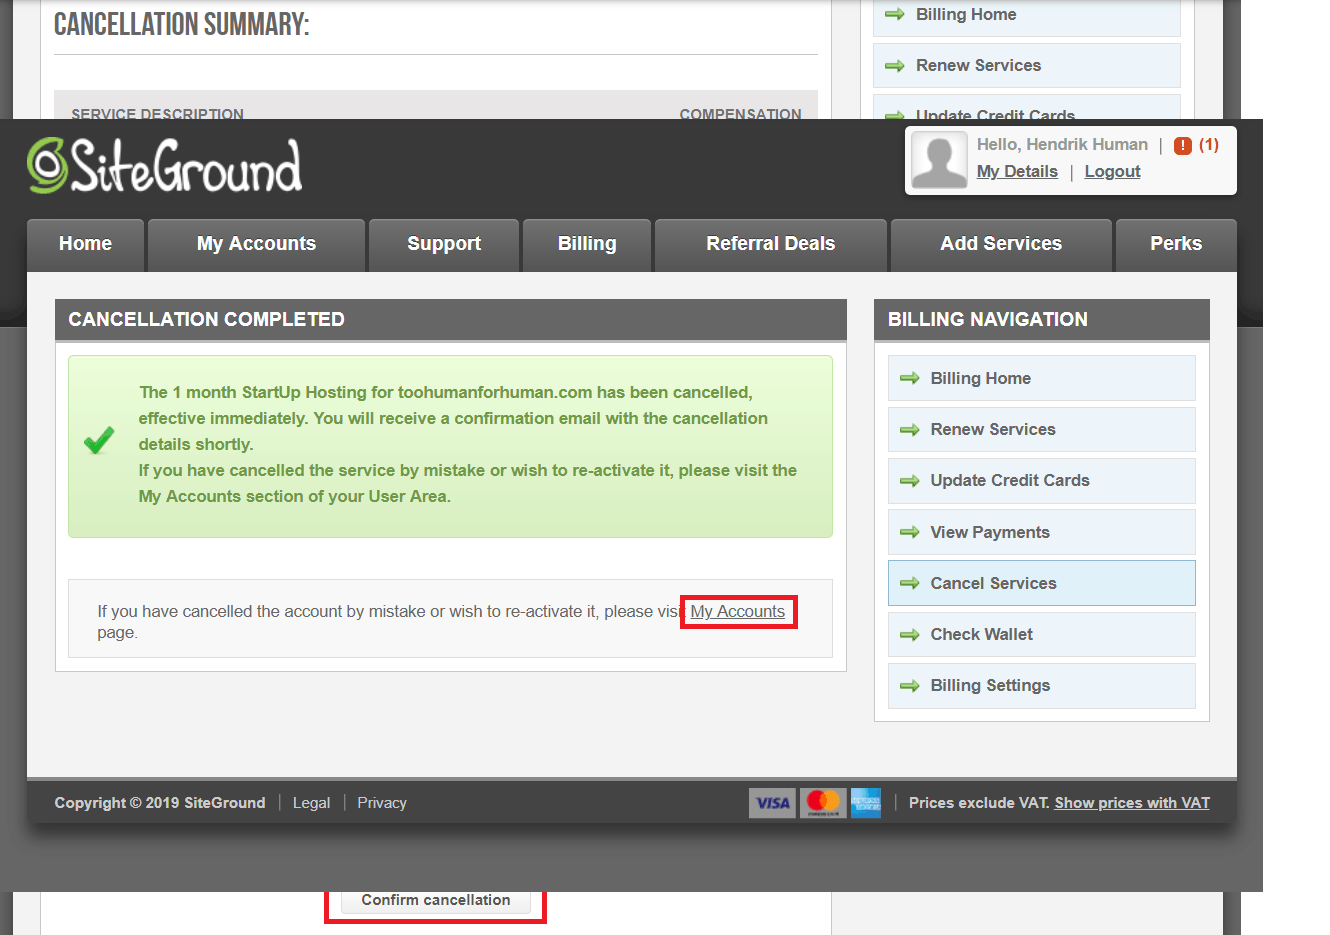 How to Cancel Your Account with SiteGround and Get a Refund-image7